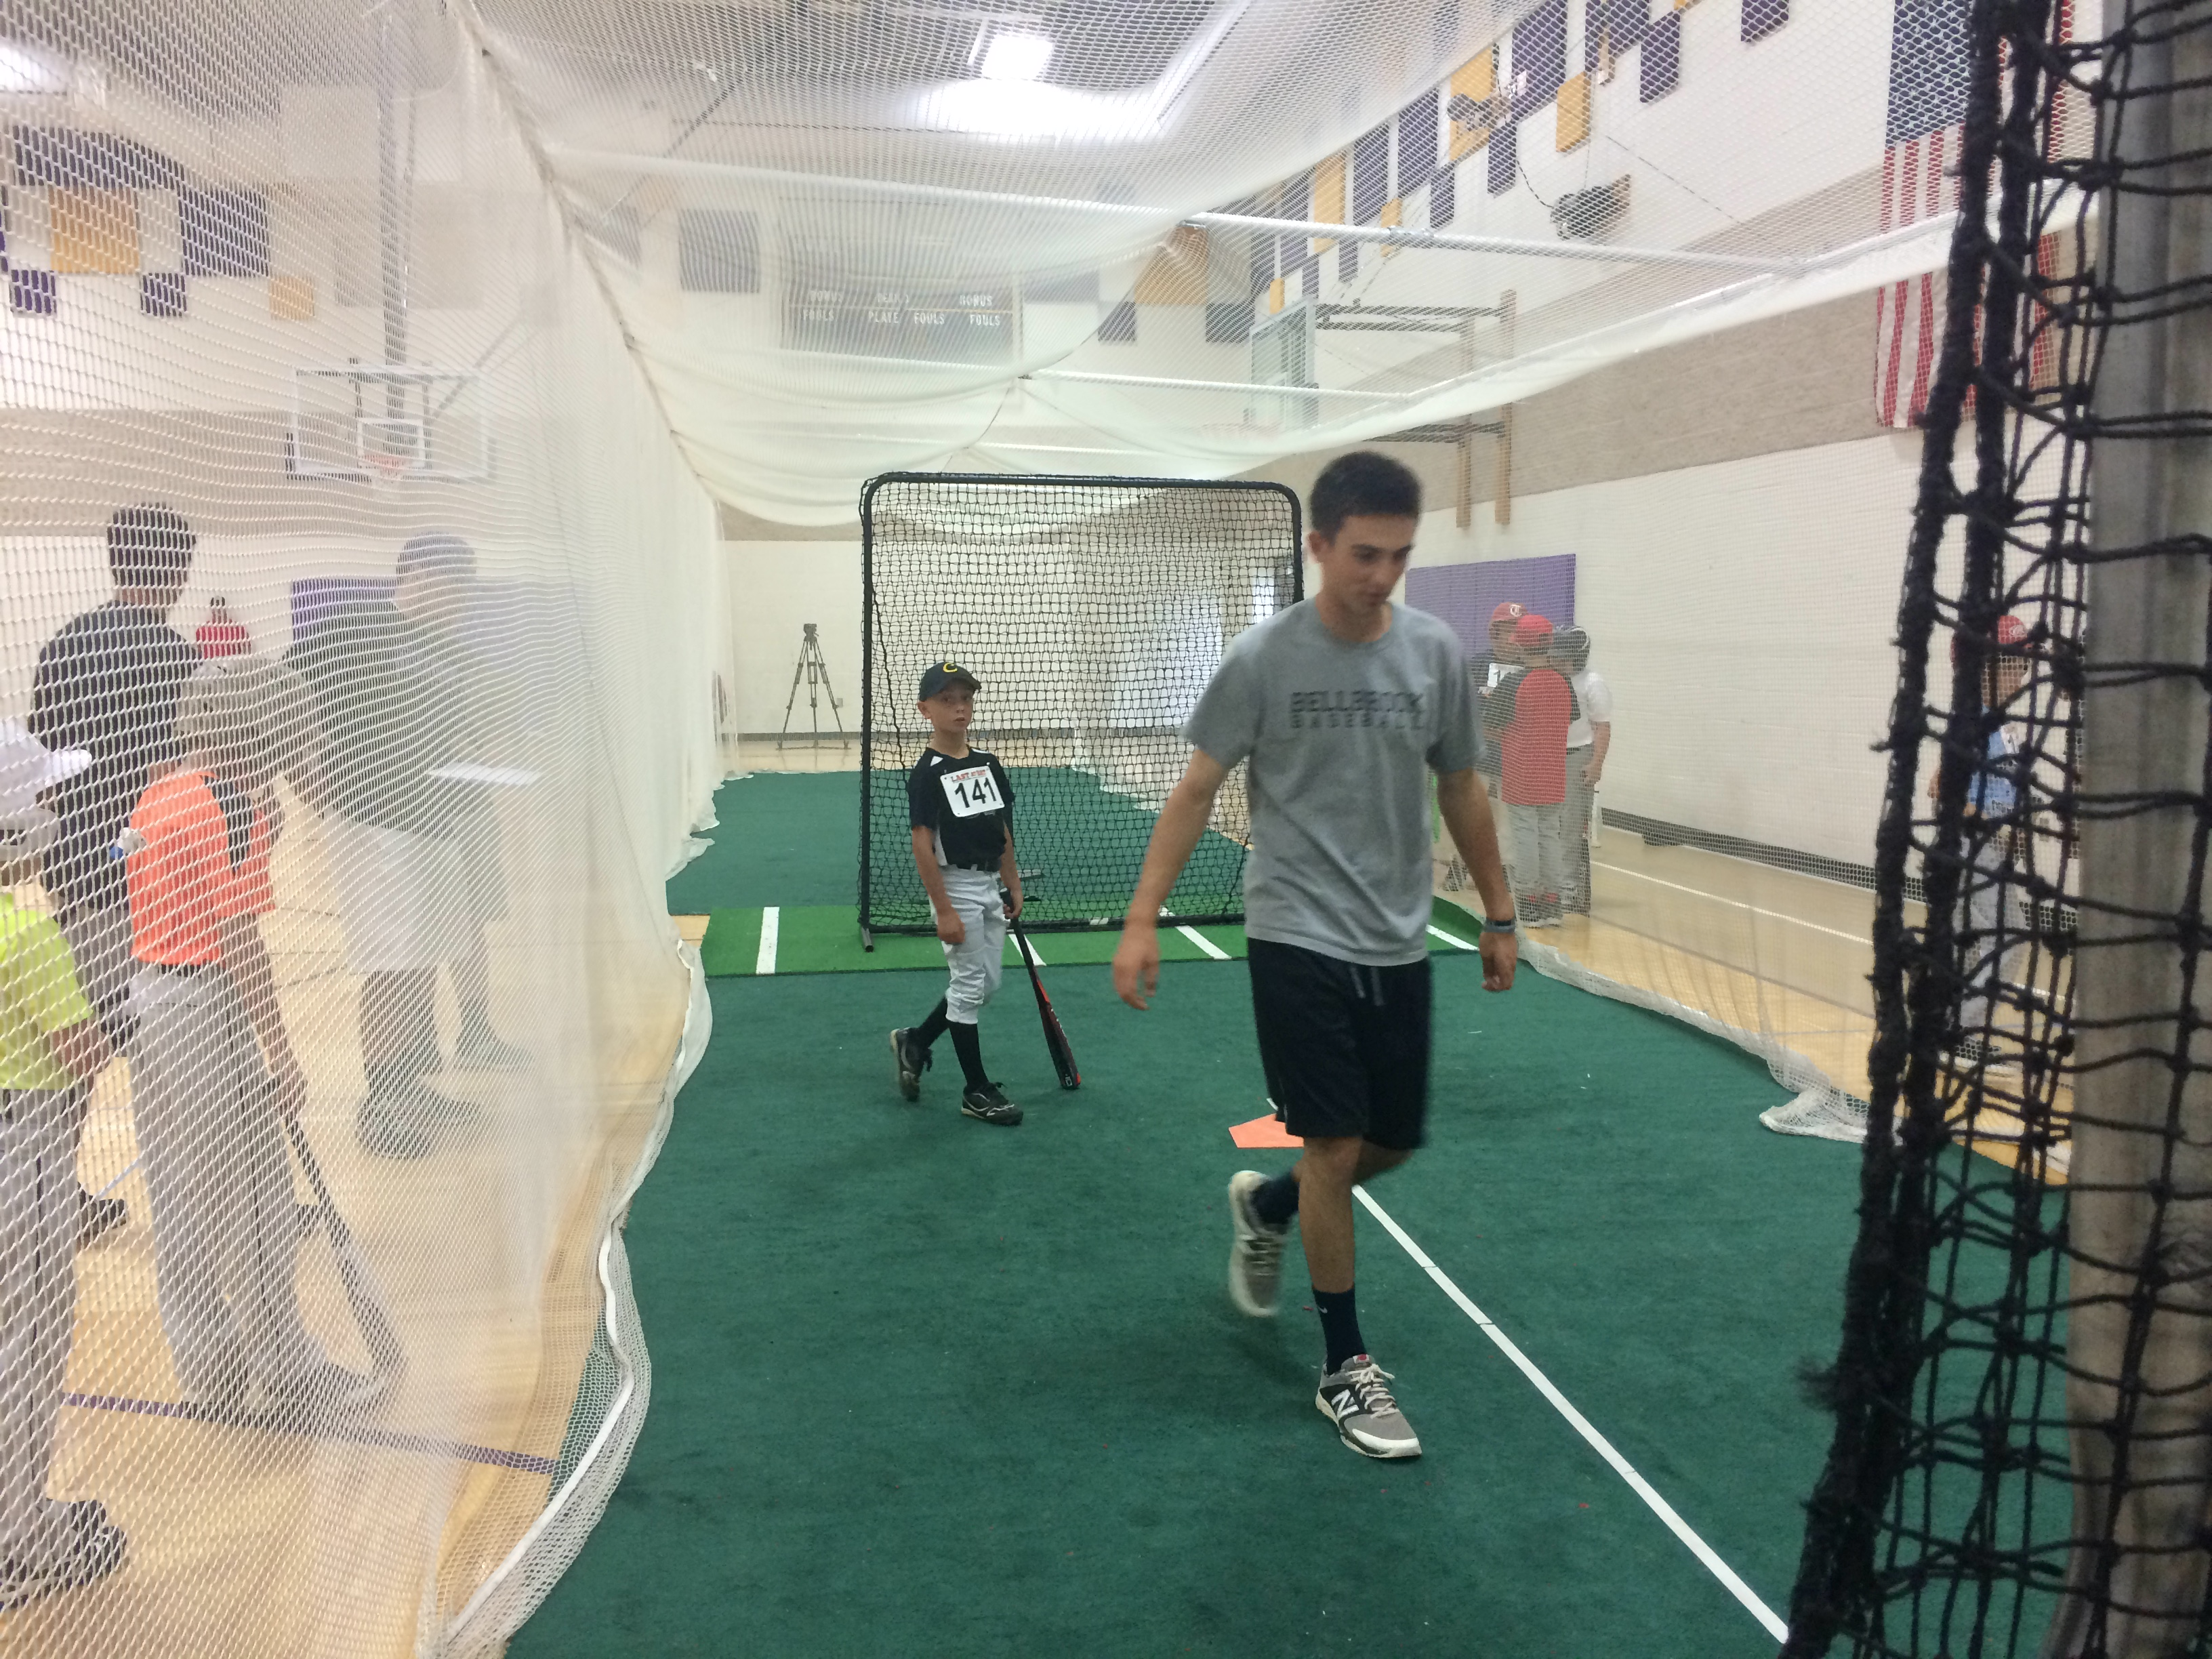 Acting hopefuls showed off their batting prowess. (Photo by: WDTN/Jake Ryle)